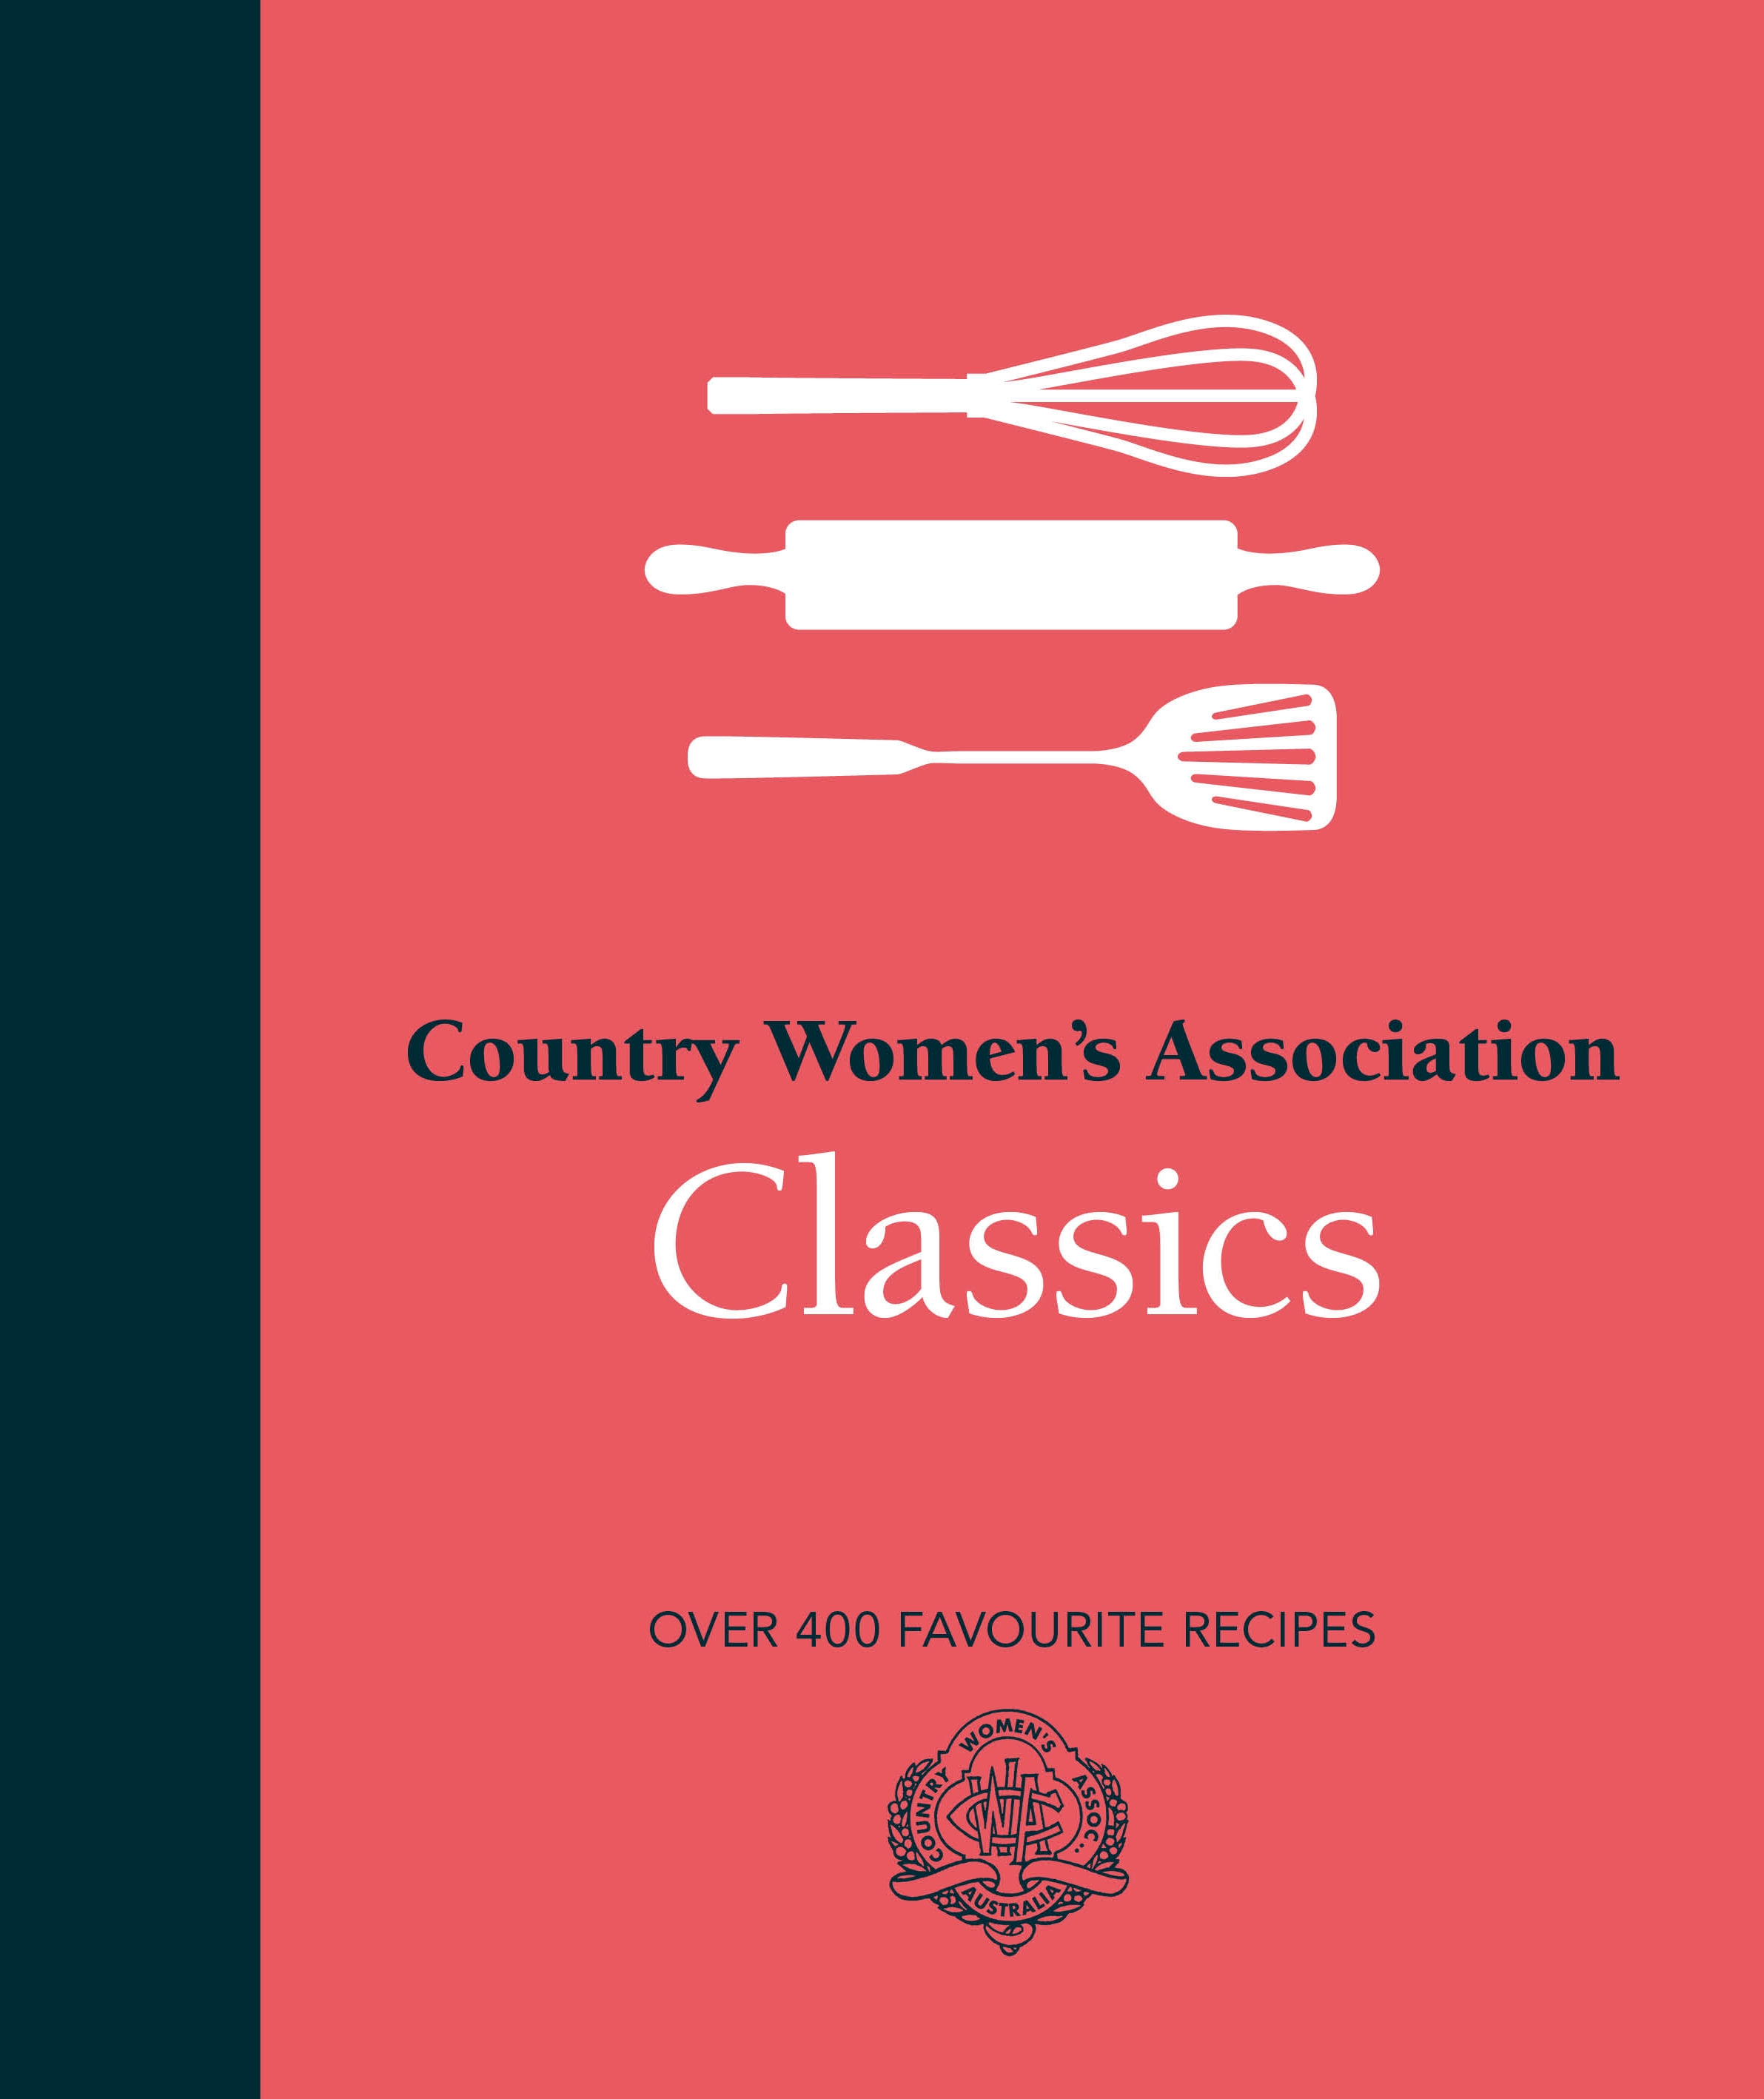 CWA Classics by Country Women's Association, ISBN: 9780143566144